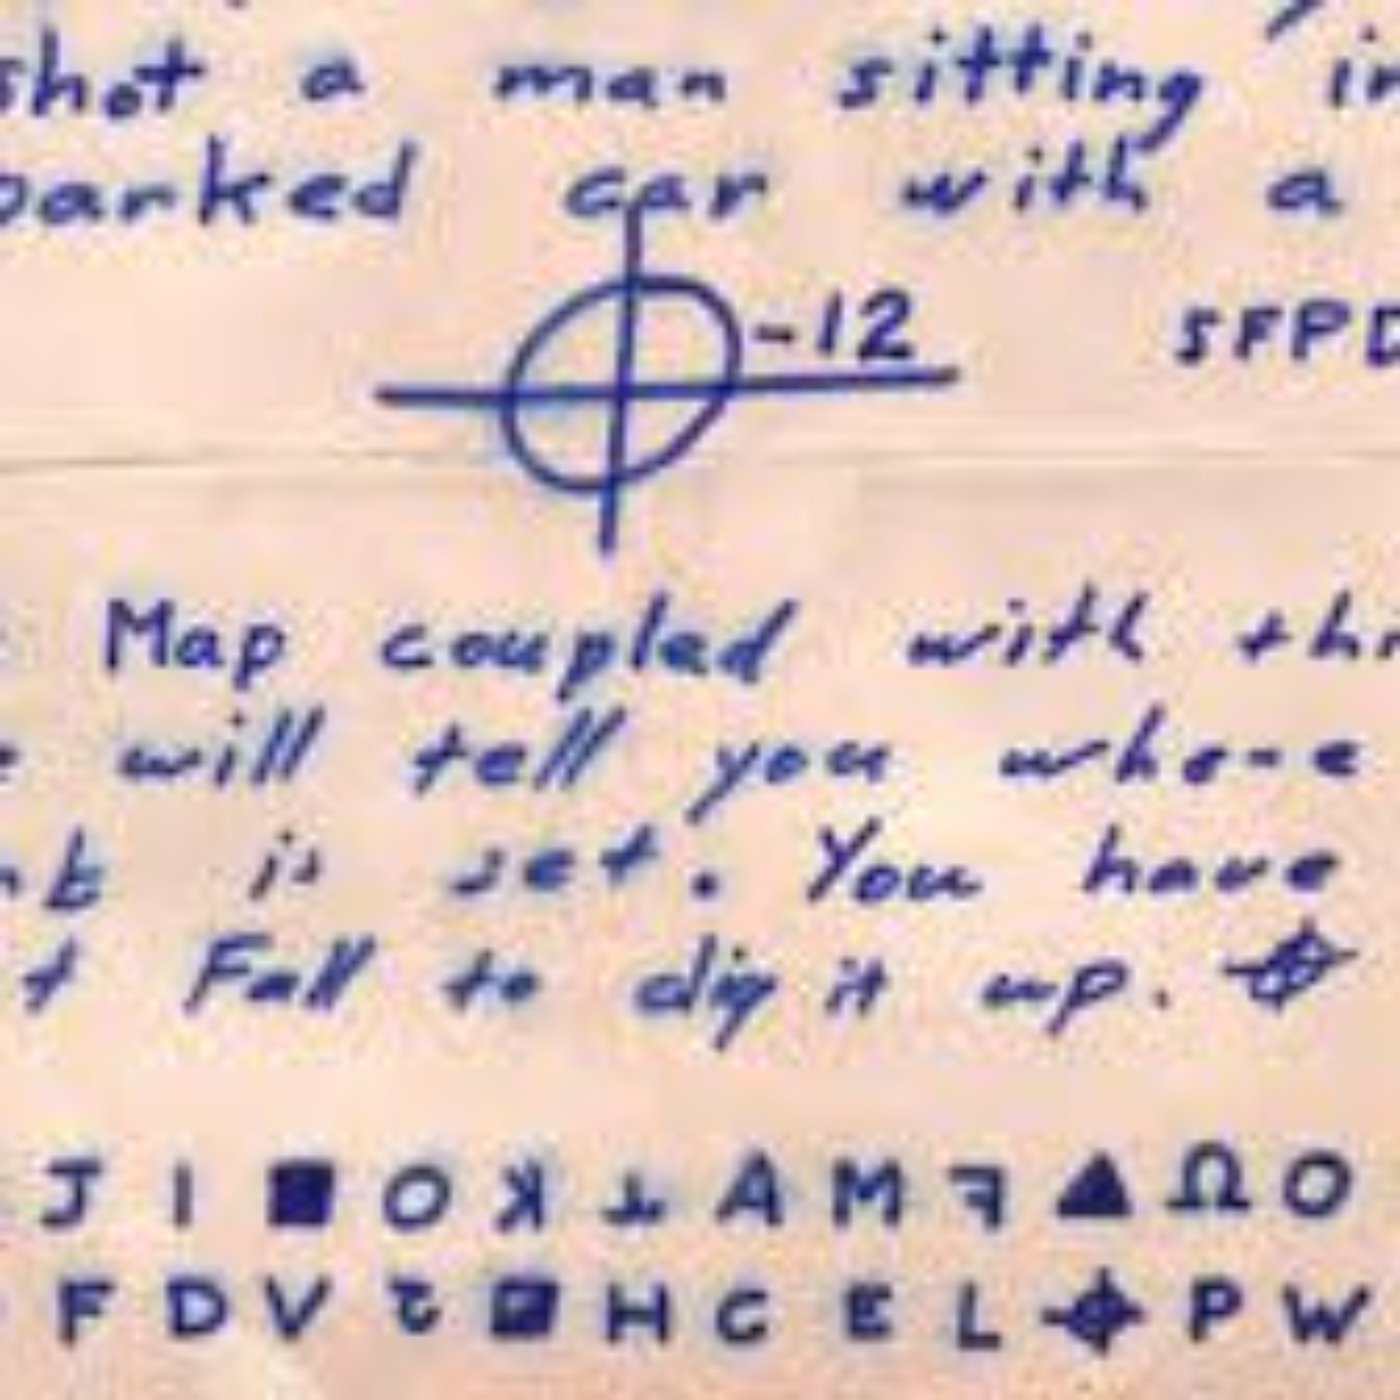 ZODIAC KILLER LETTERS ROUNDTABLE DISCUSSION